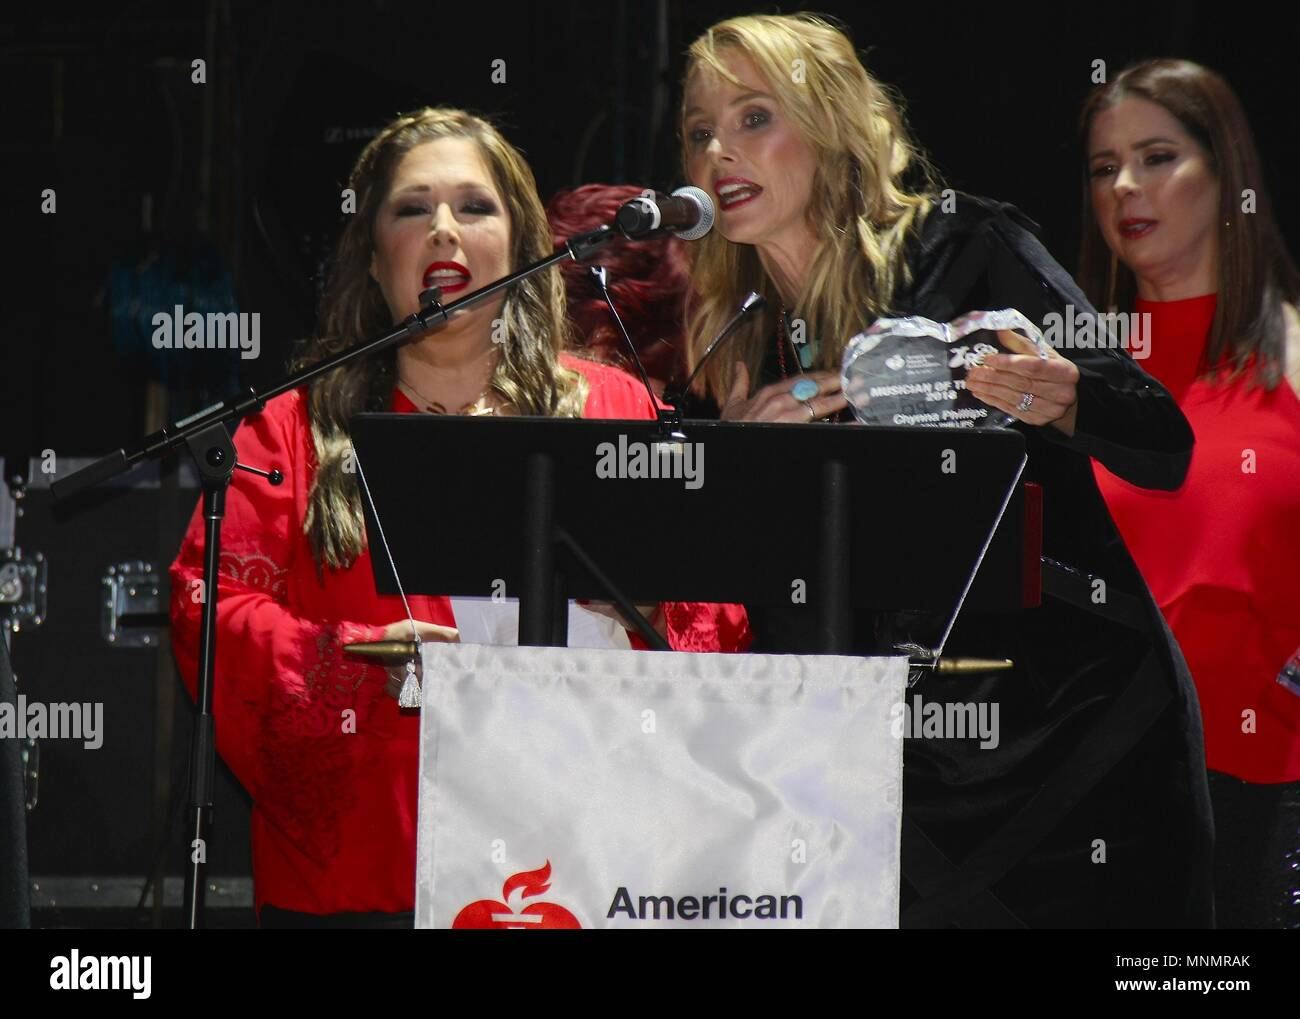 Hollywood, California, USA. 17th May, 2018. I15986CHW.The American Heart Association Presents The 3rd Annual ROCK THE RED Music Benefit .Avalon Hollywood, Los Angeles, CA USA.05/17/2018.CARNIE WILSON, CHYNNA PHILLIPS AND WENDY WILSON . © Clinton H.Wallace/Photomundo International/ Photos Inc Credit: Clinton Wallace/Globe Photos/ZUMA Wire/Alamy Live News - Stock Image